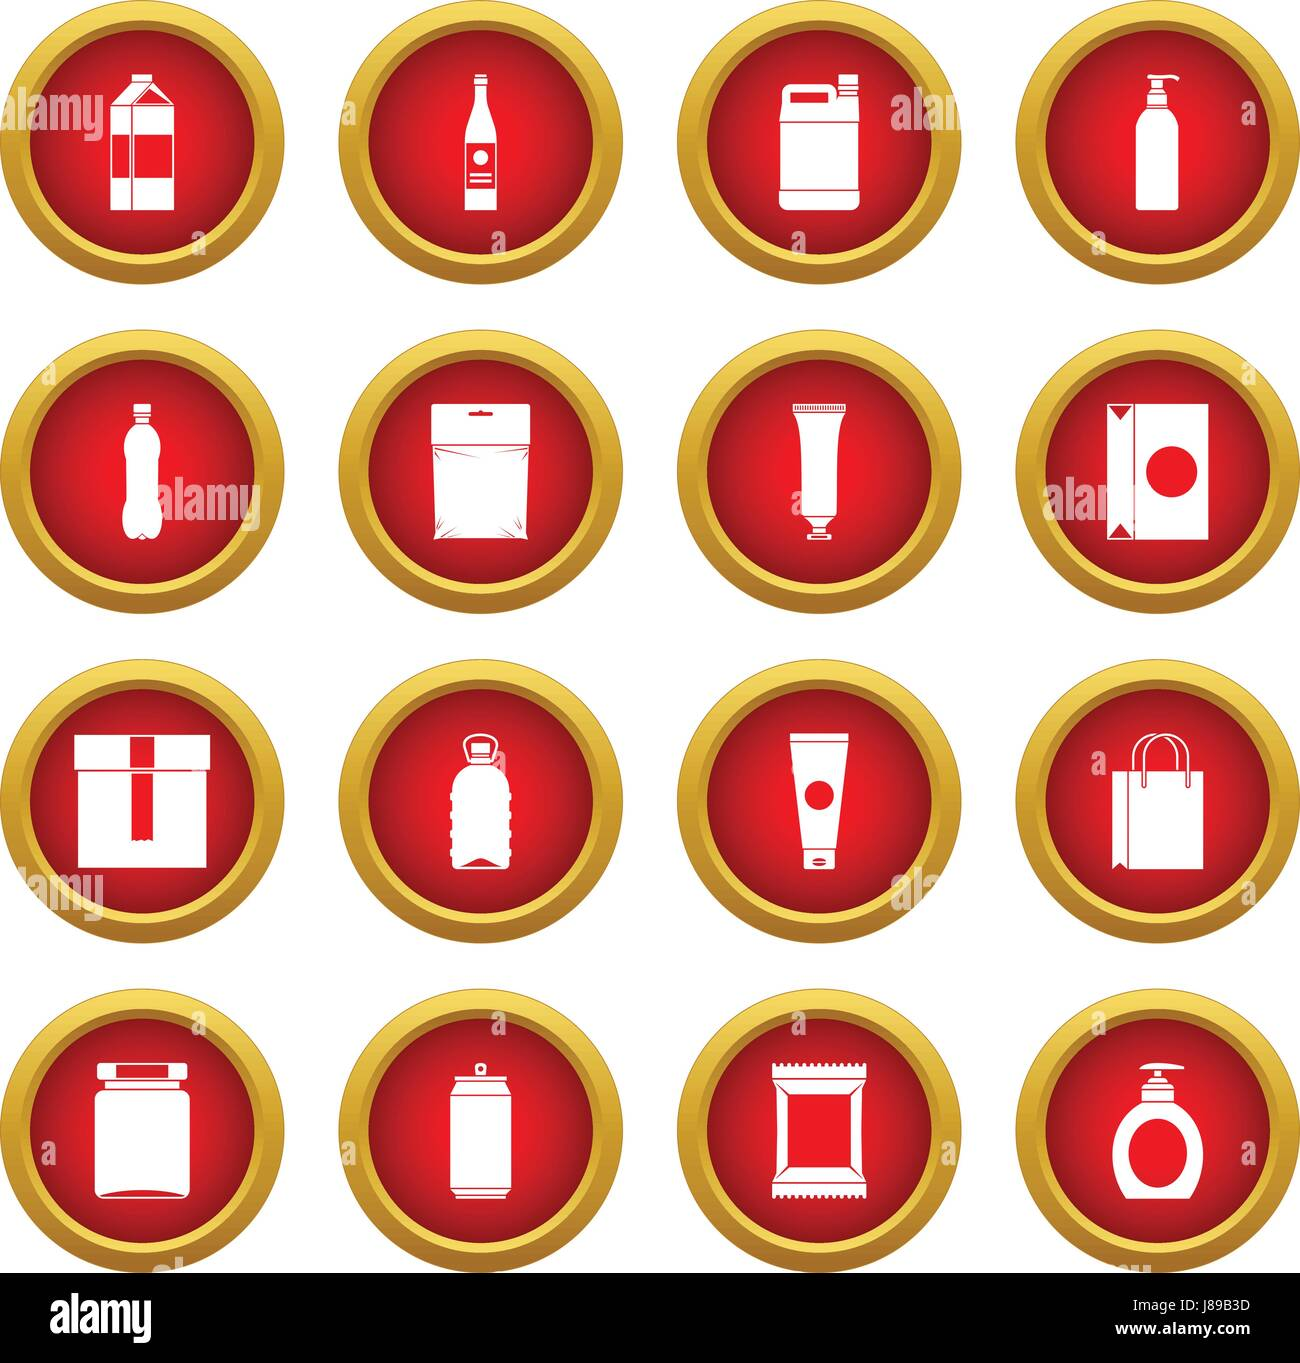 Packaging items icon red circle set - Stock Image